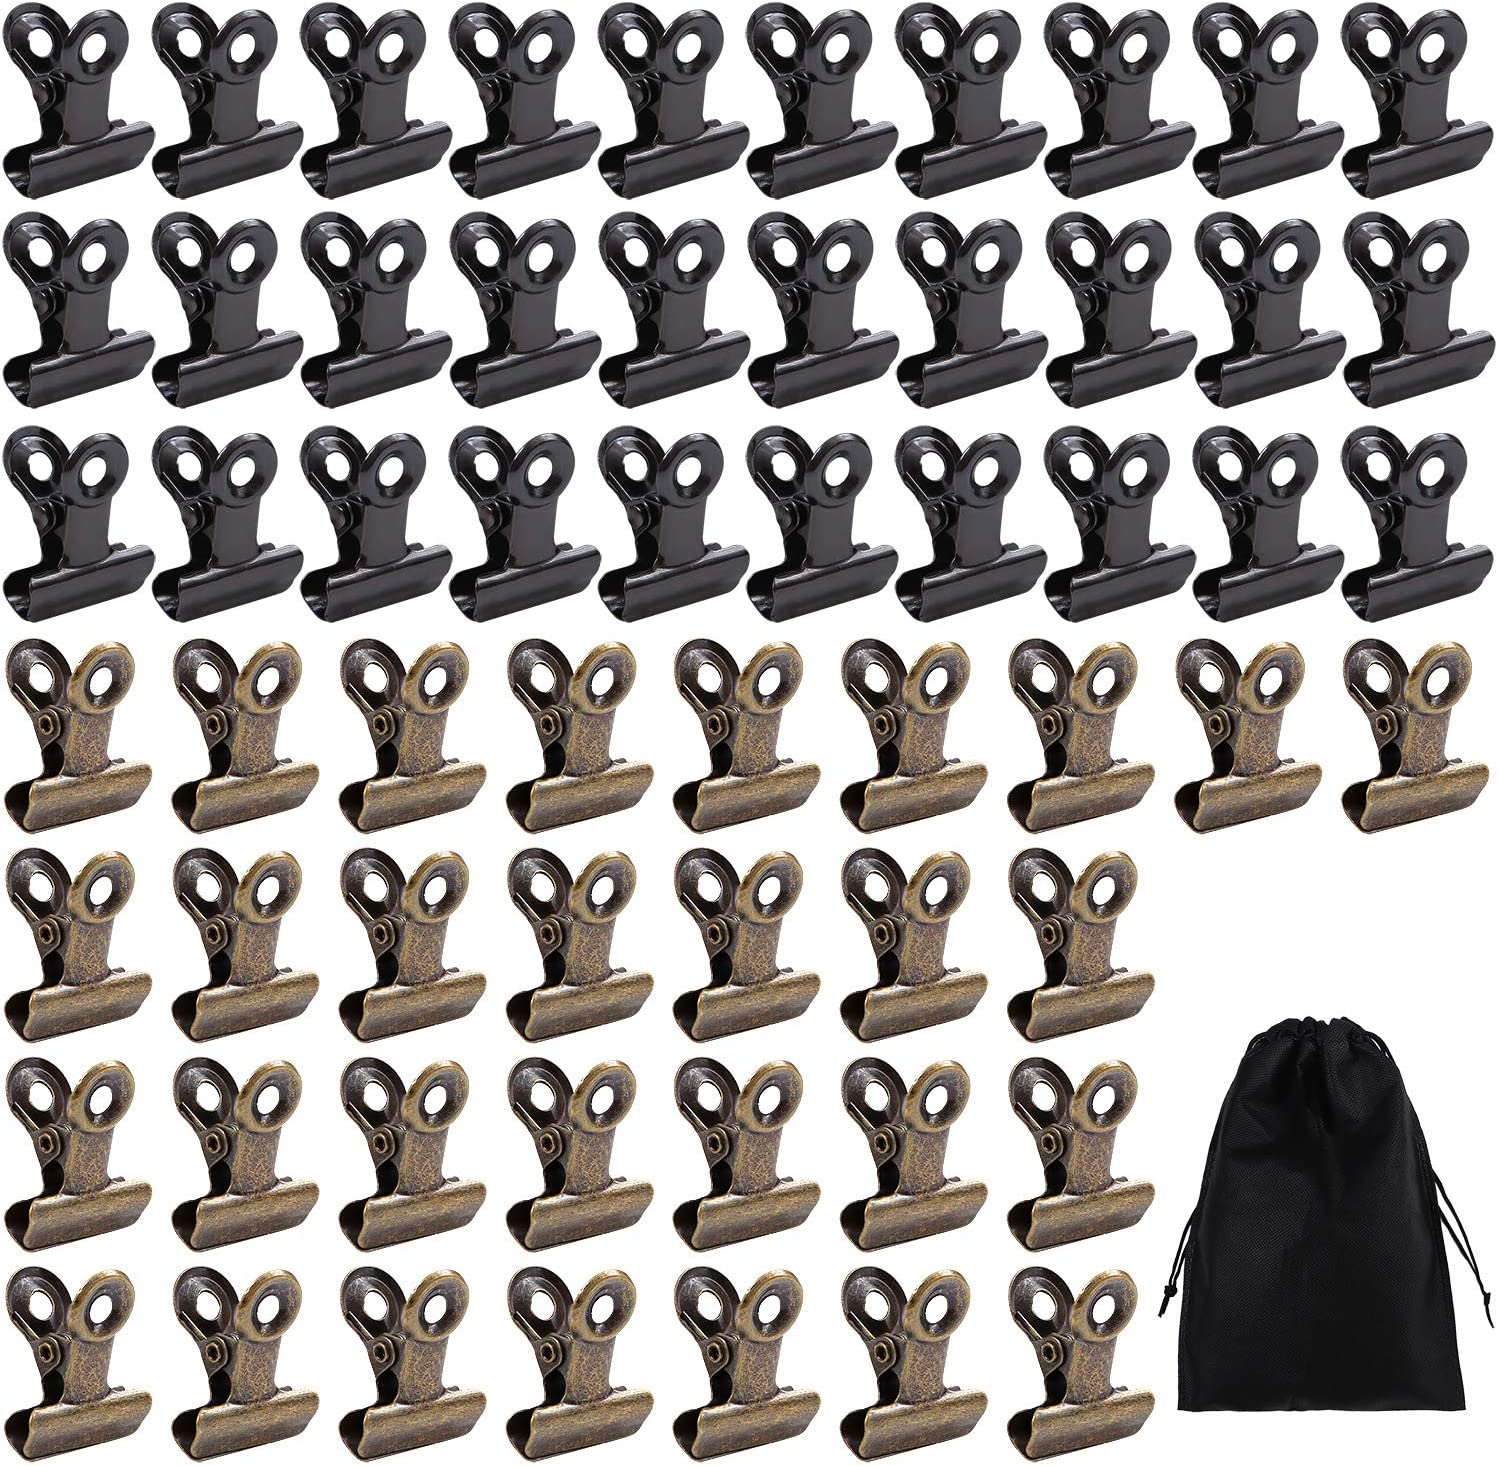 Aneco 120 Pieces Bulldog Clips 1 Inch Mini Metal Binder Clips Photo Clips for Home and Office Supplies